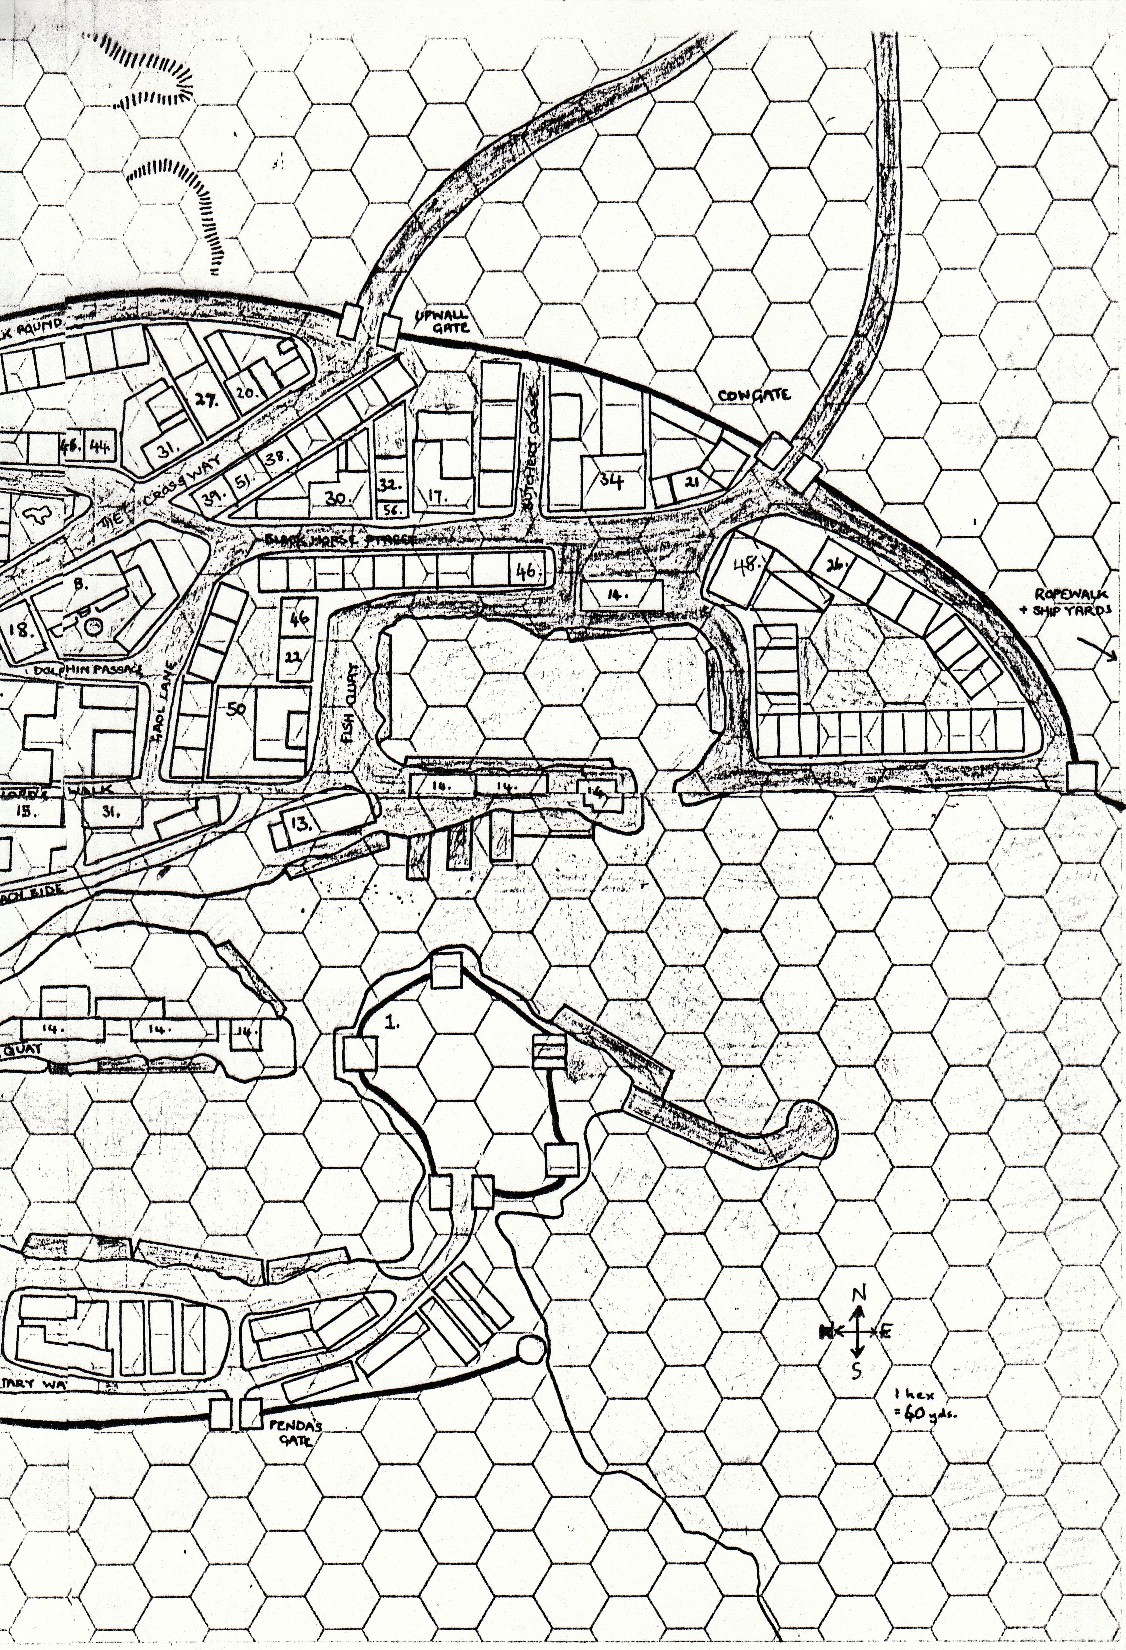 Brymston_town_map_east.jpg